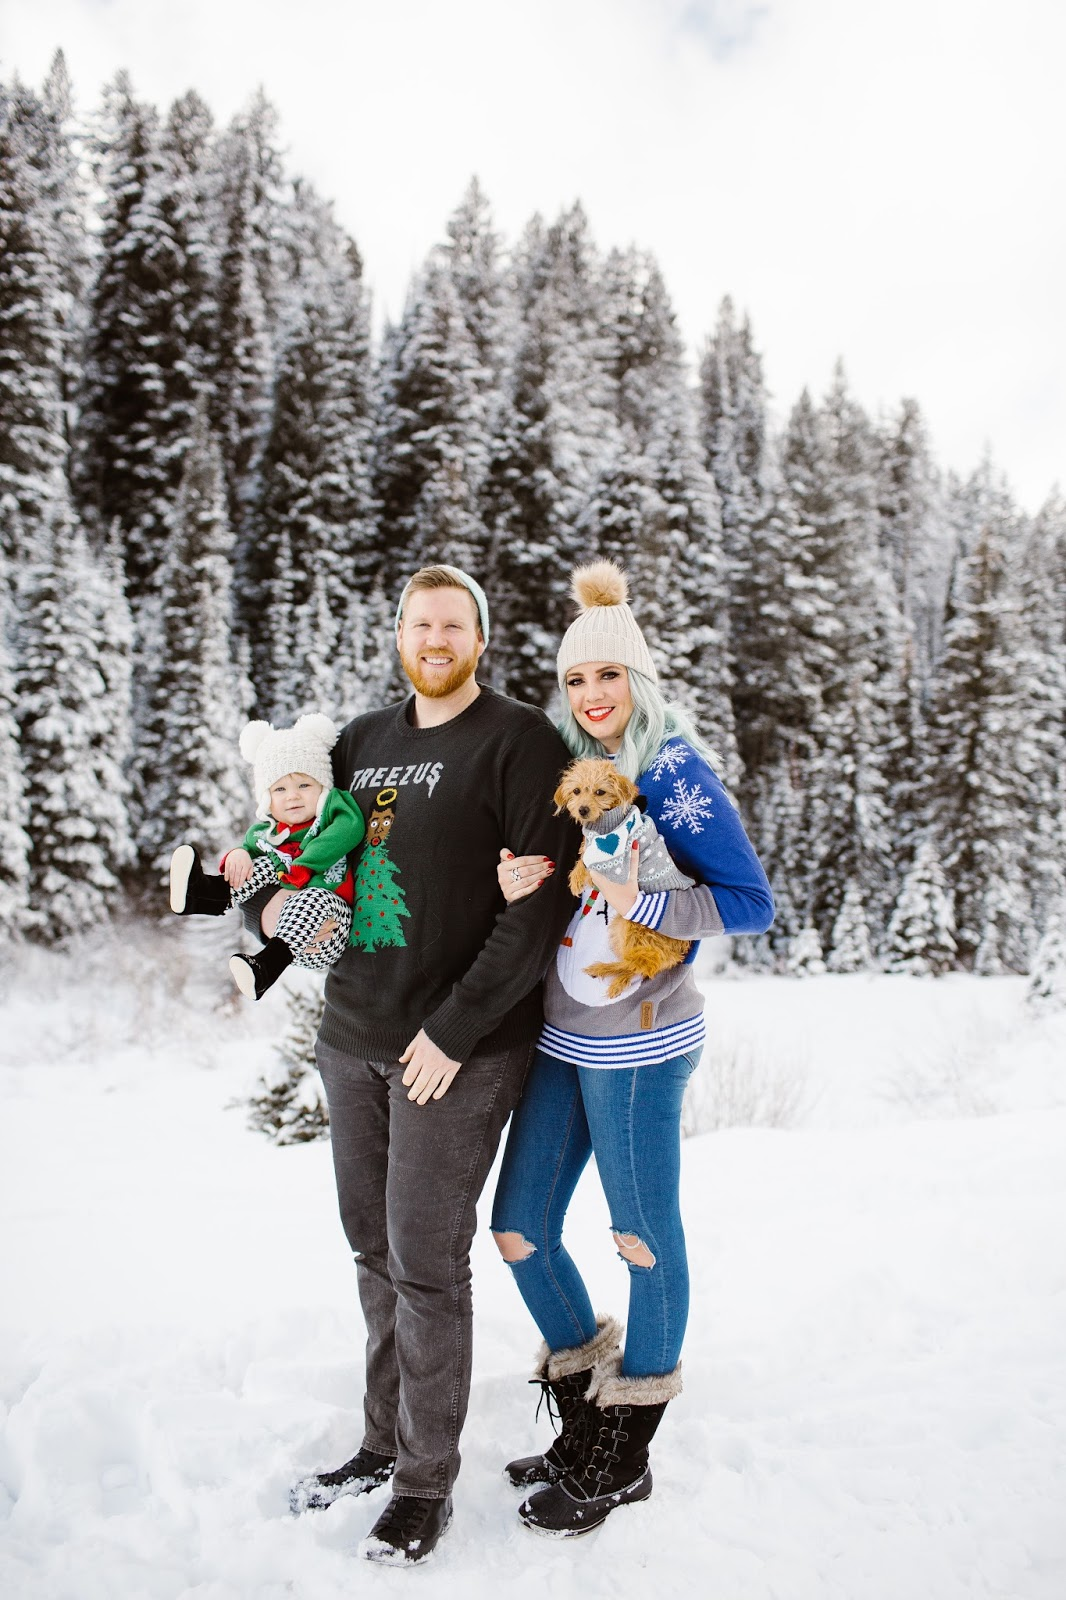 Winter Family Photos Photo Ideas Christmas Sweaters